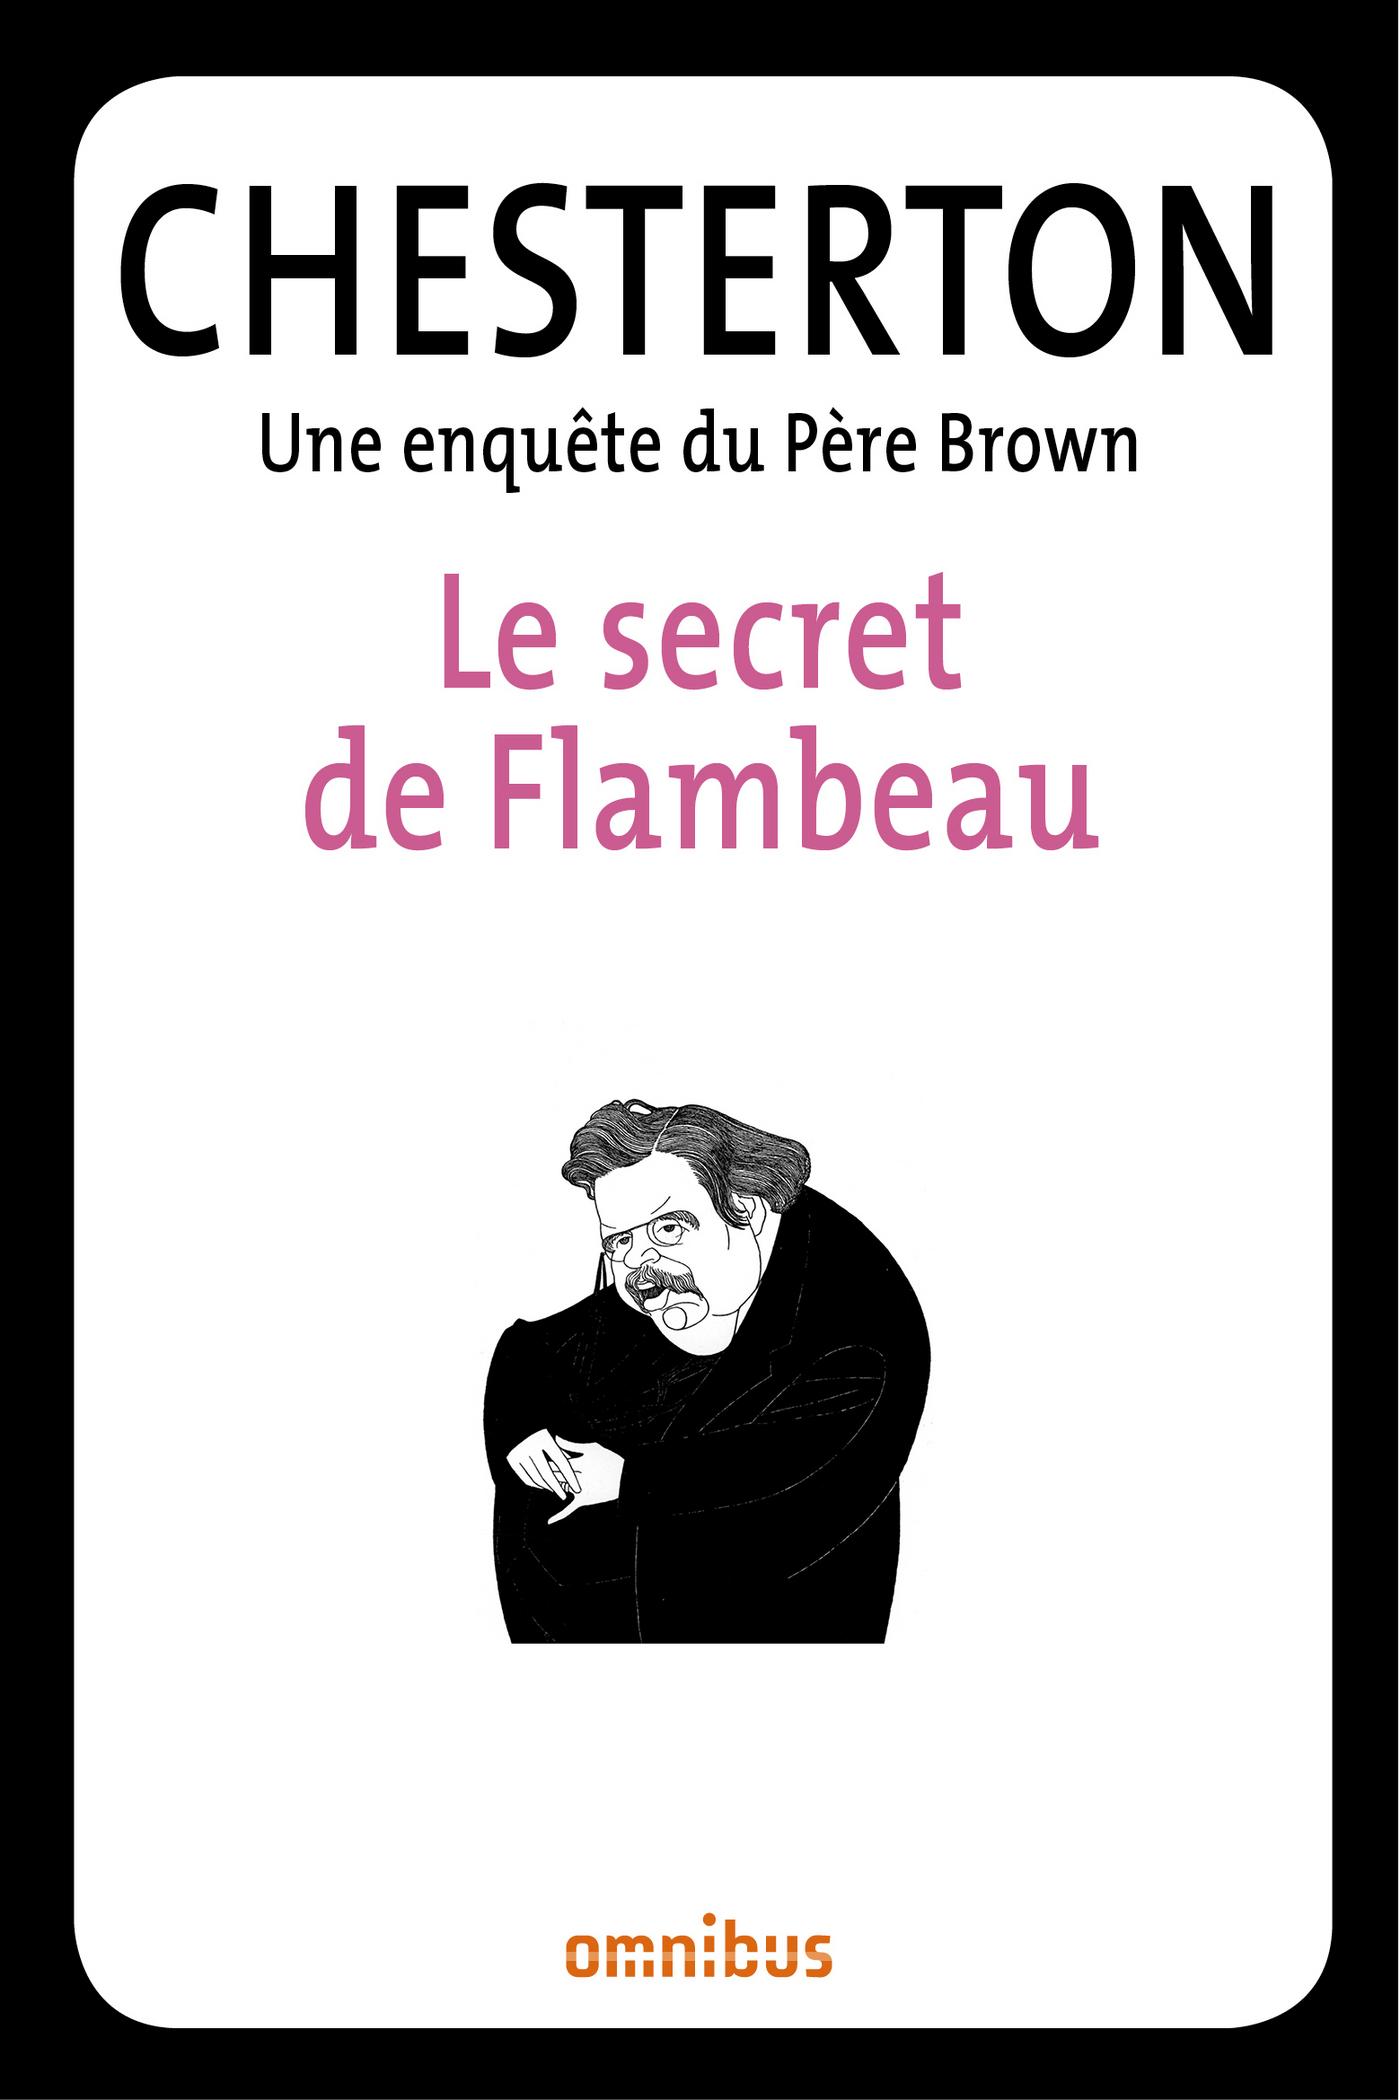 Le secret de Flambeau